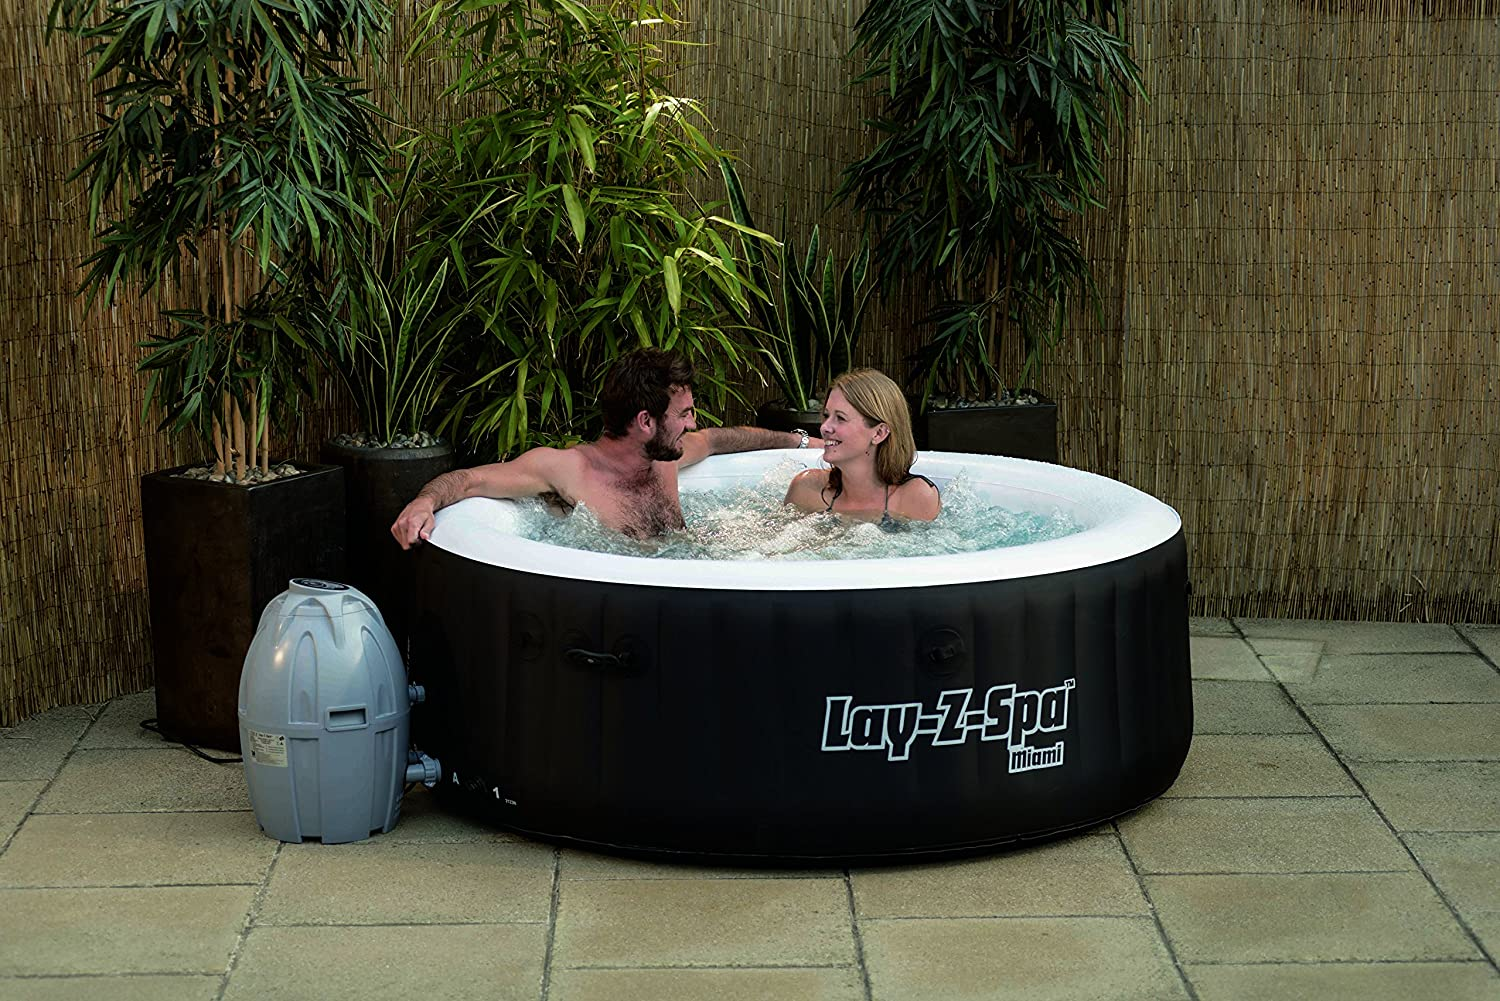 tub pools hot and tubs lifesmart reviews